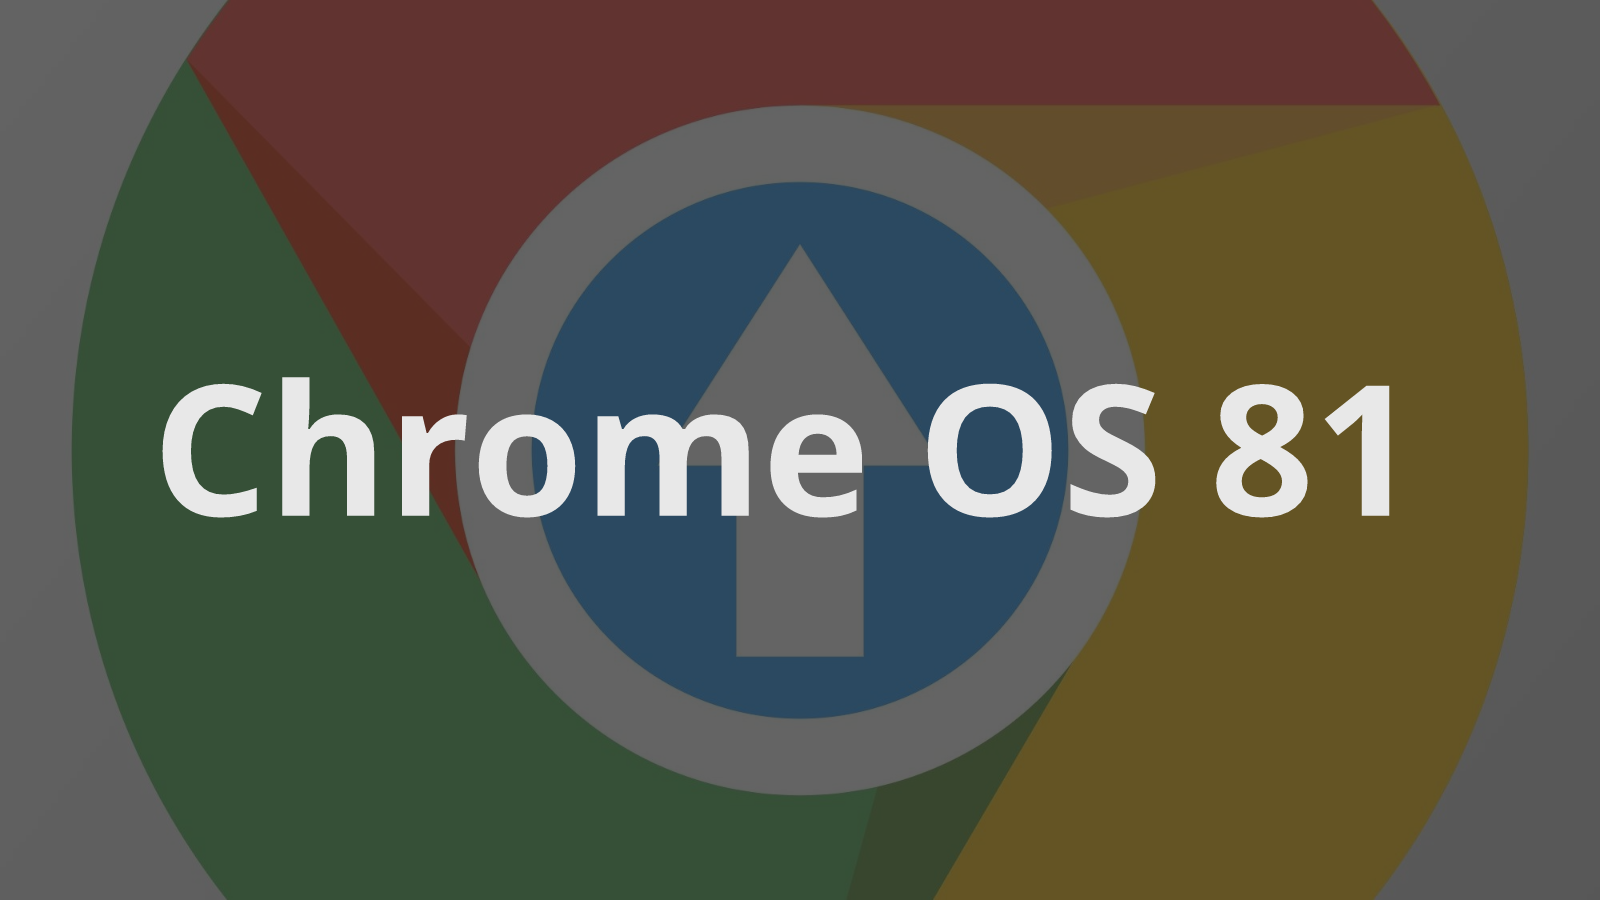 PIP Support and Gesture Navigation Are the Main Features of Chrome OS 81